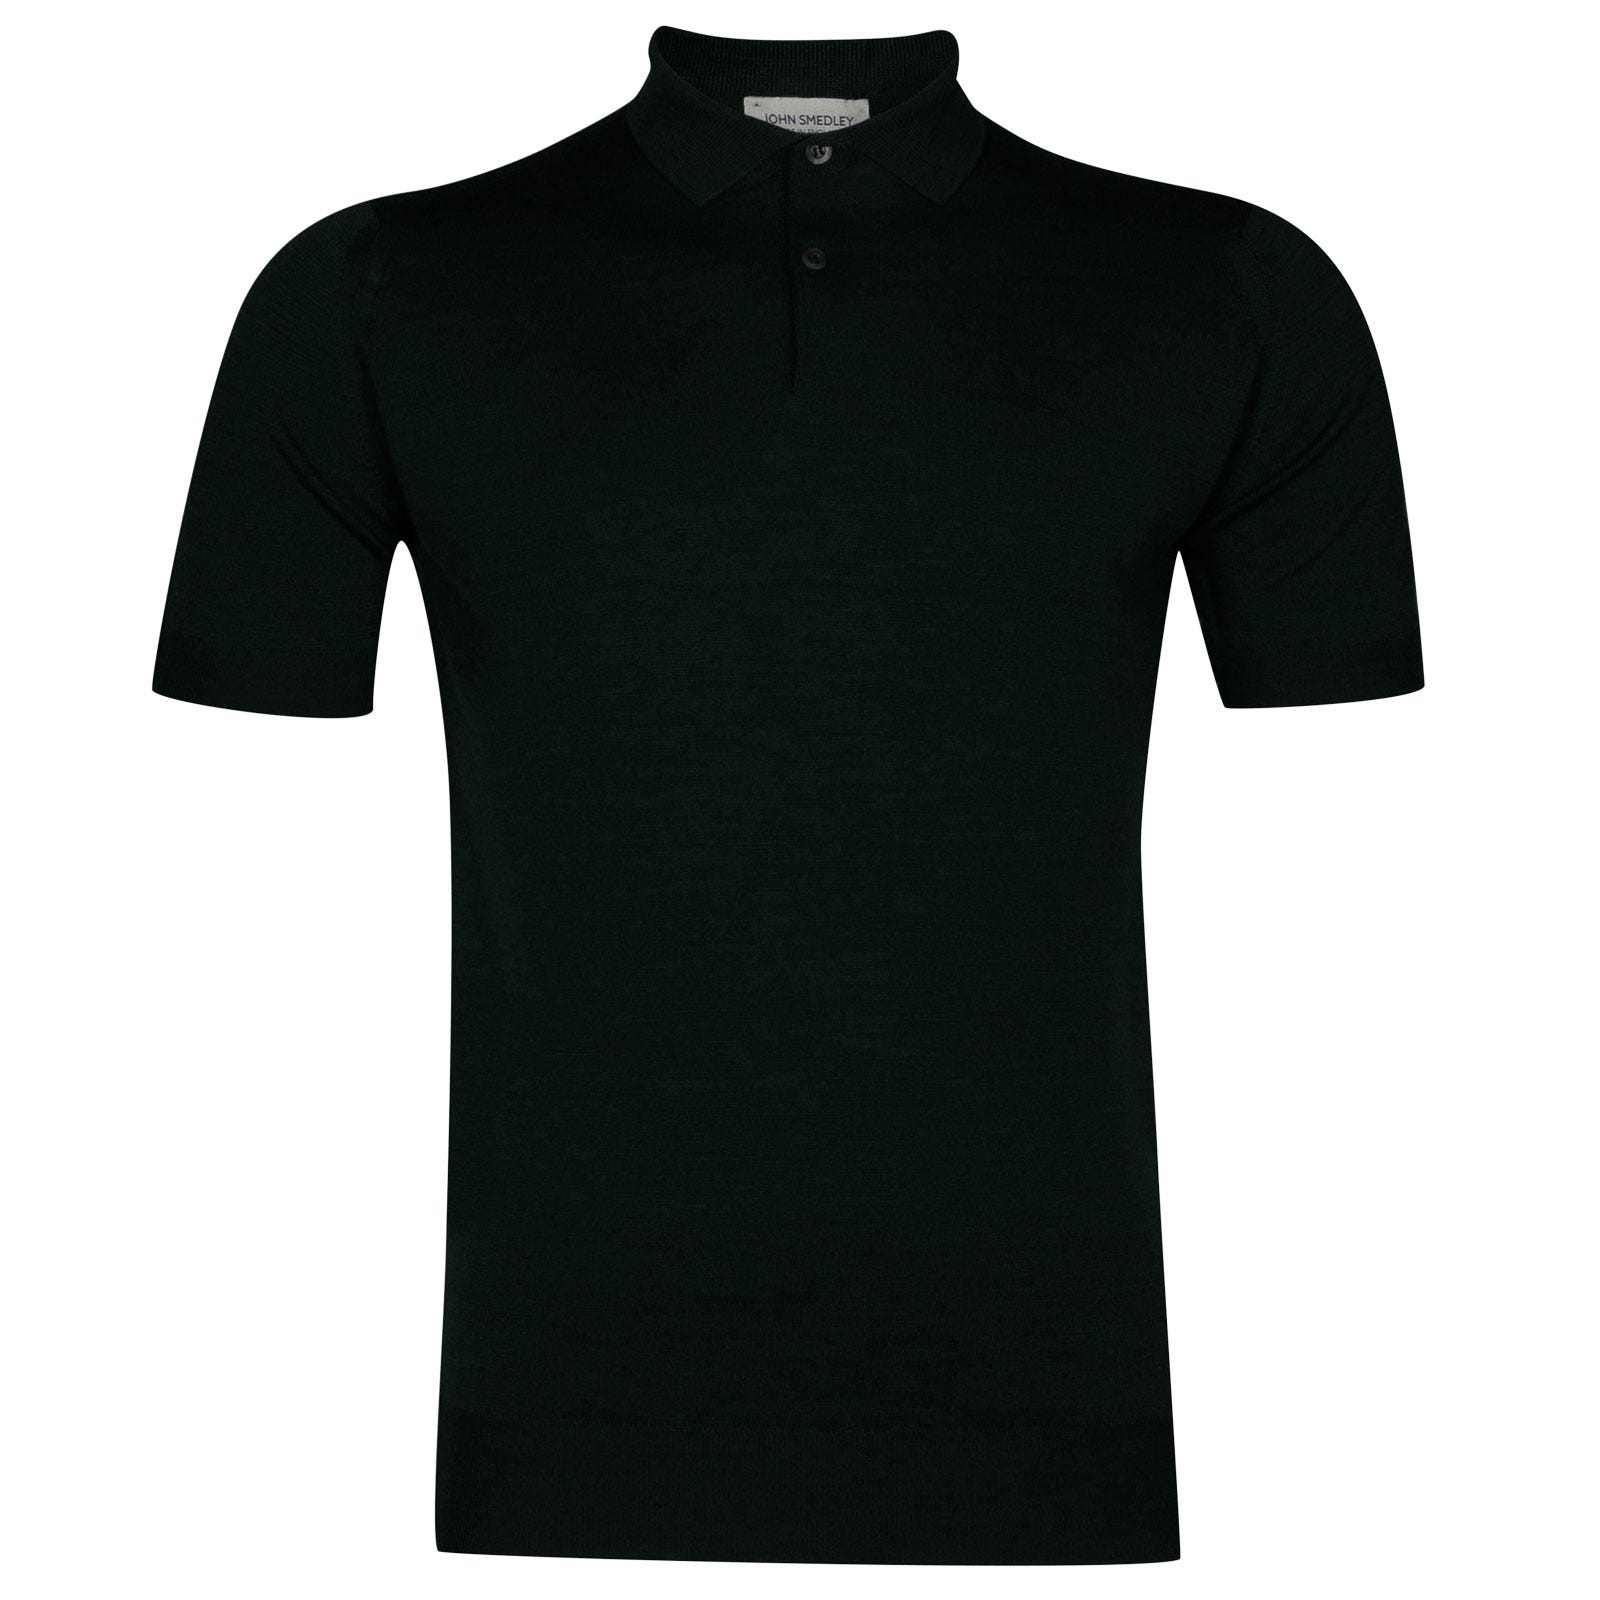 John Smedley payton Merino Wool Shirt in Racing Green-XL